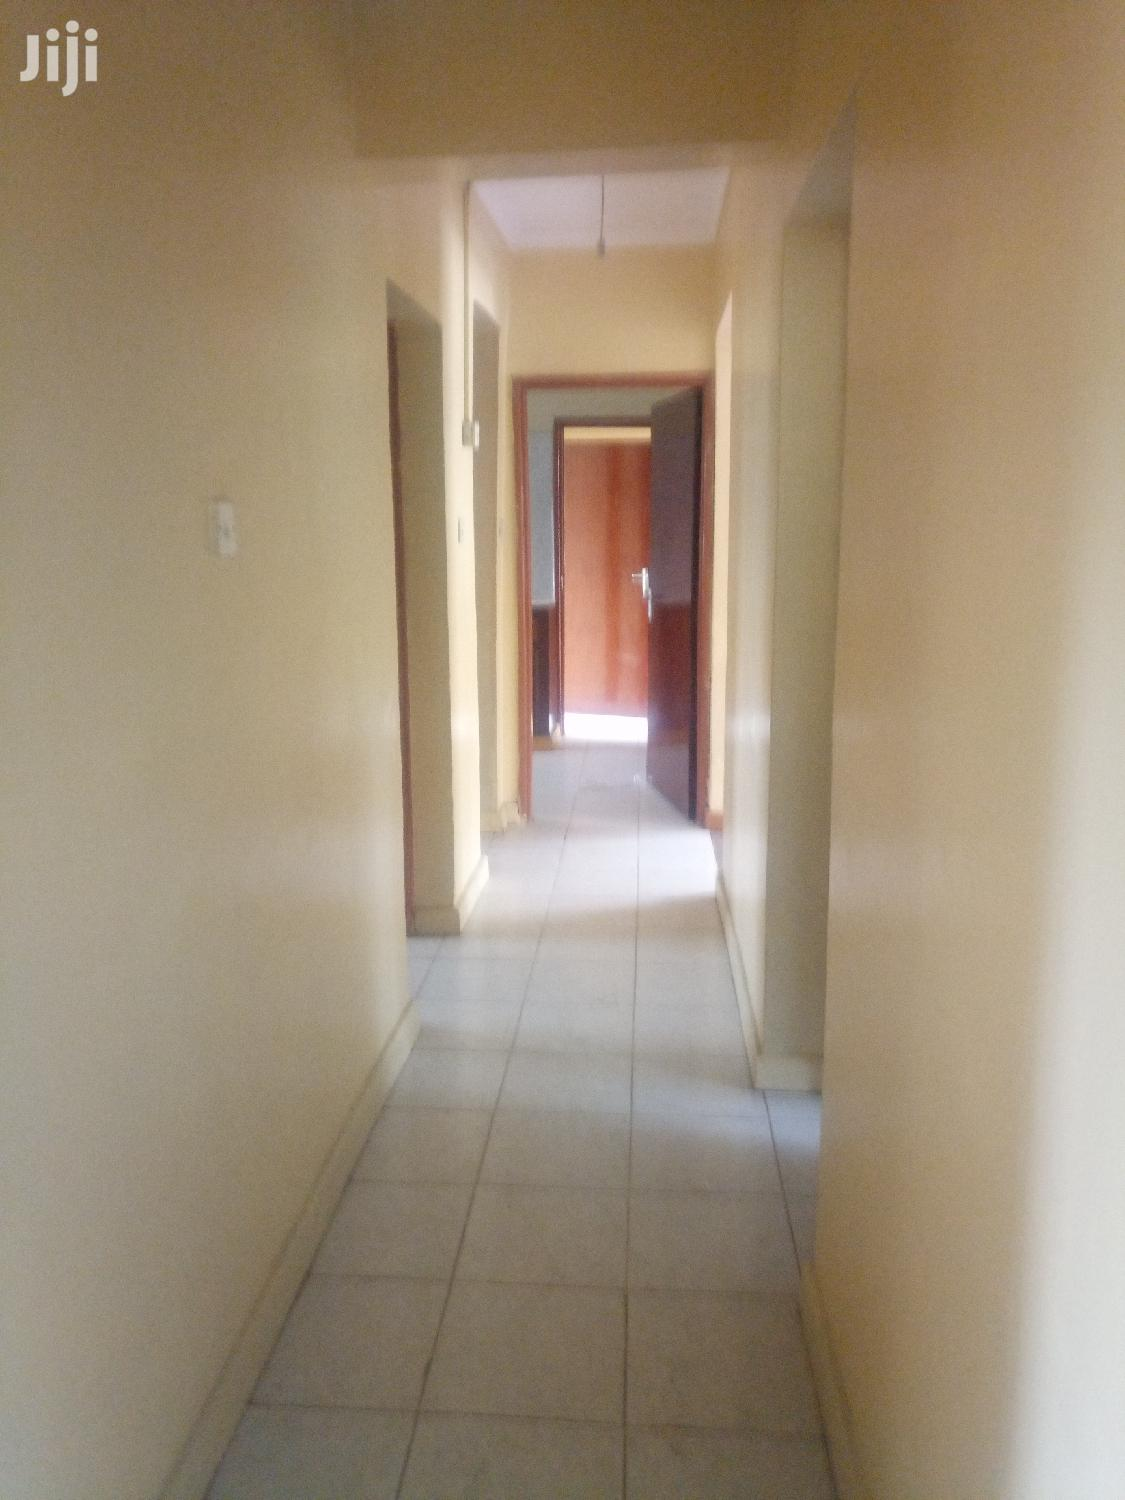 3brs +Dsq All Ensuite,Borehole And Very Secure | Houses & Apartments For Rent for sale in Lavington, Nairobi, Kenya